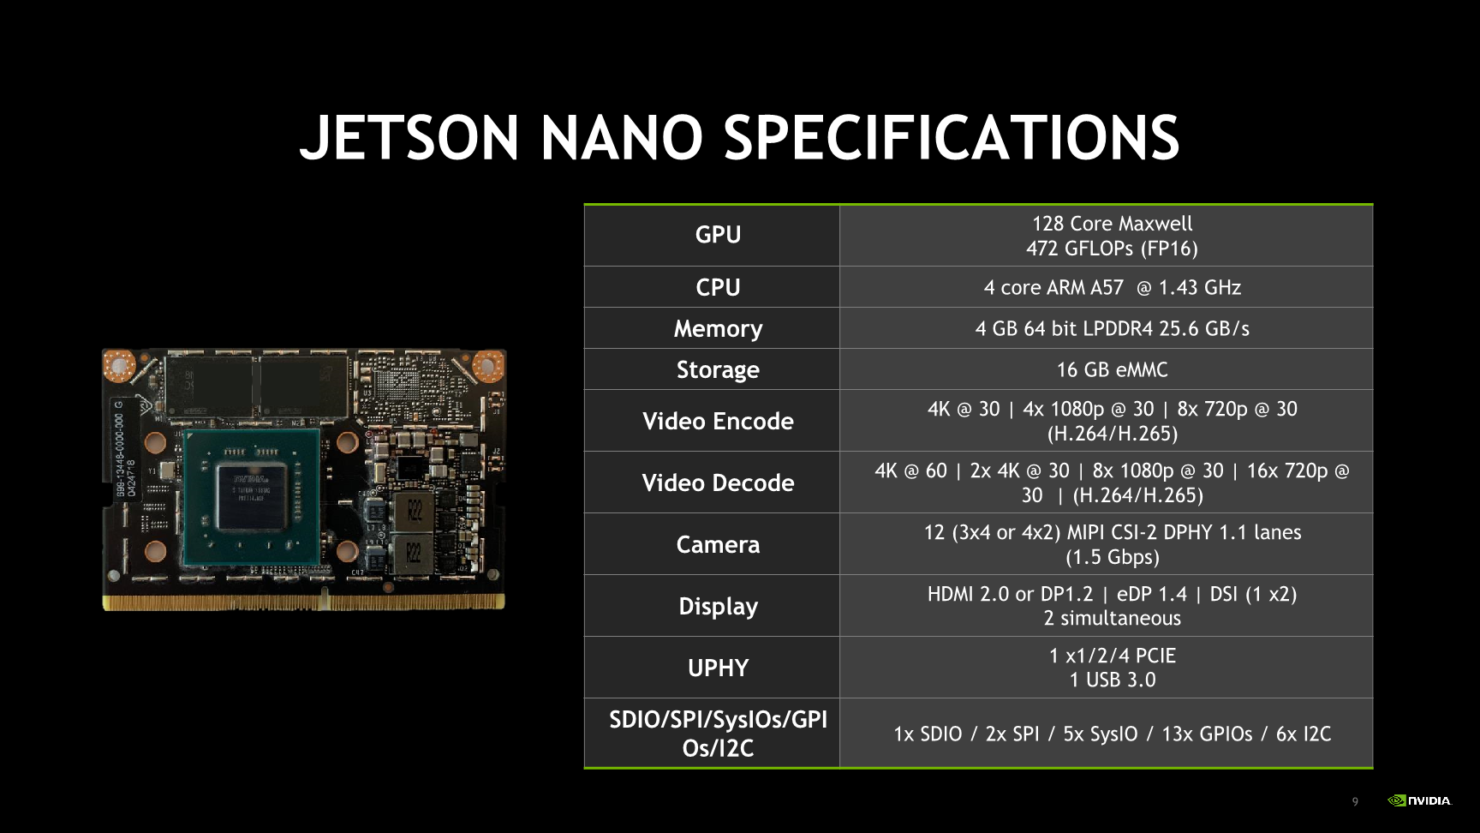 Jetson Nano Specifications